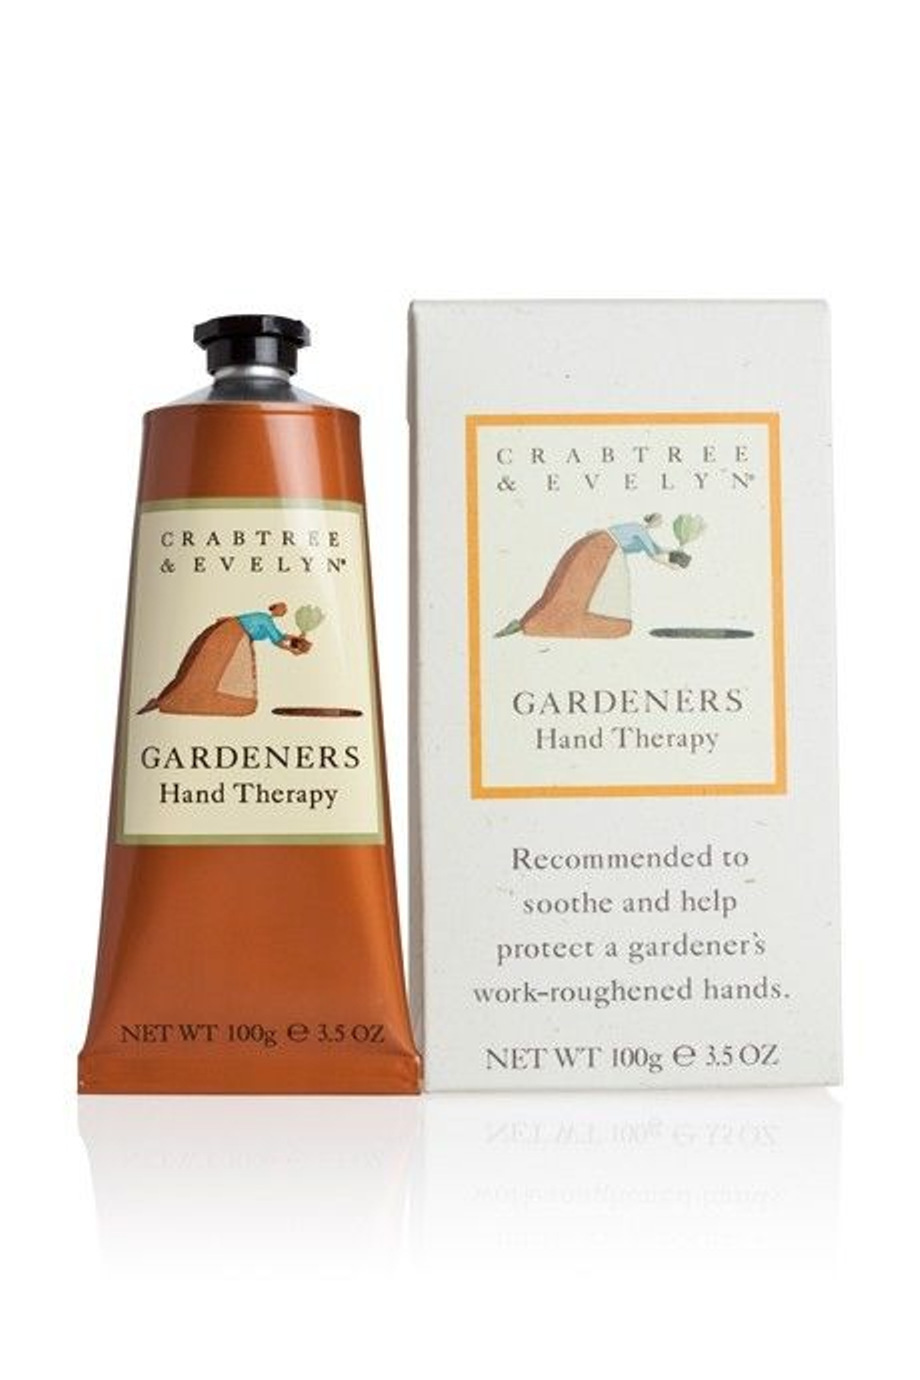 Crabtree And Evelyn Gardeners Hand Therapy Myer Online